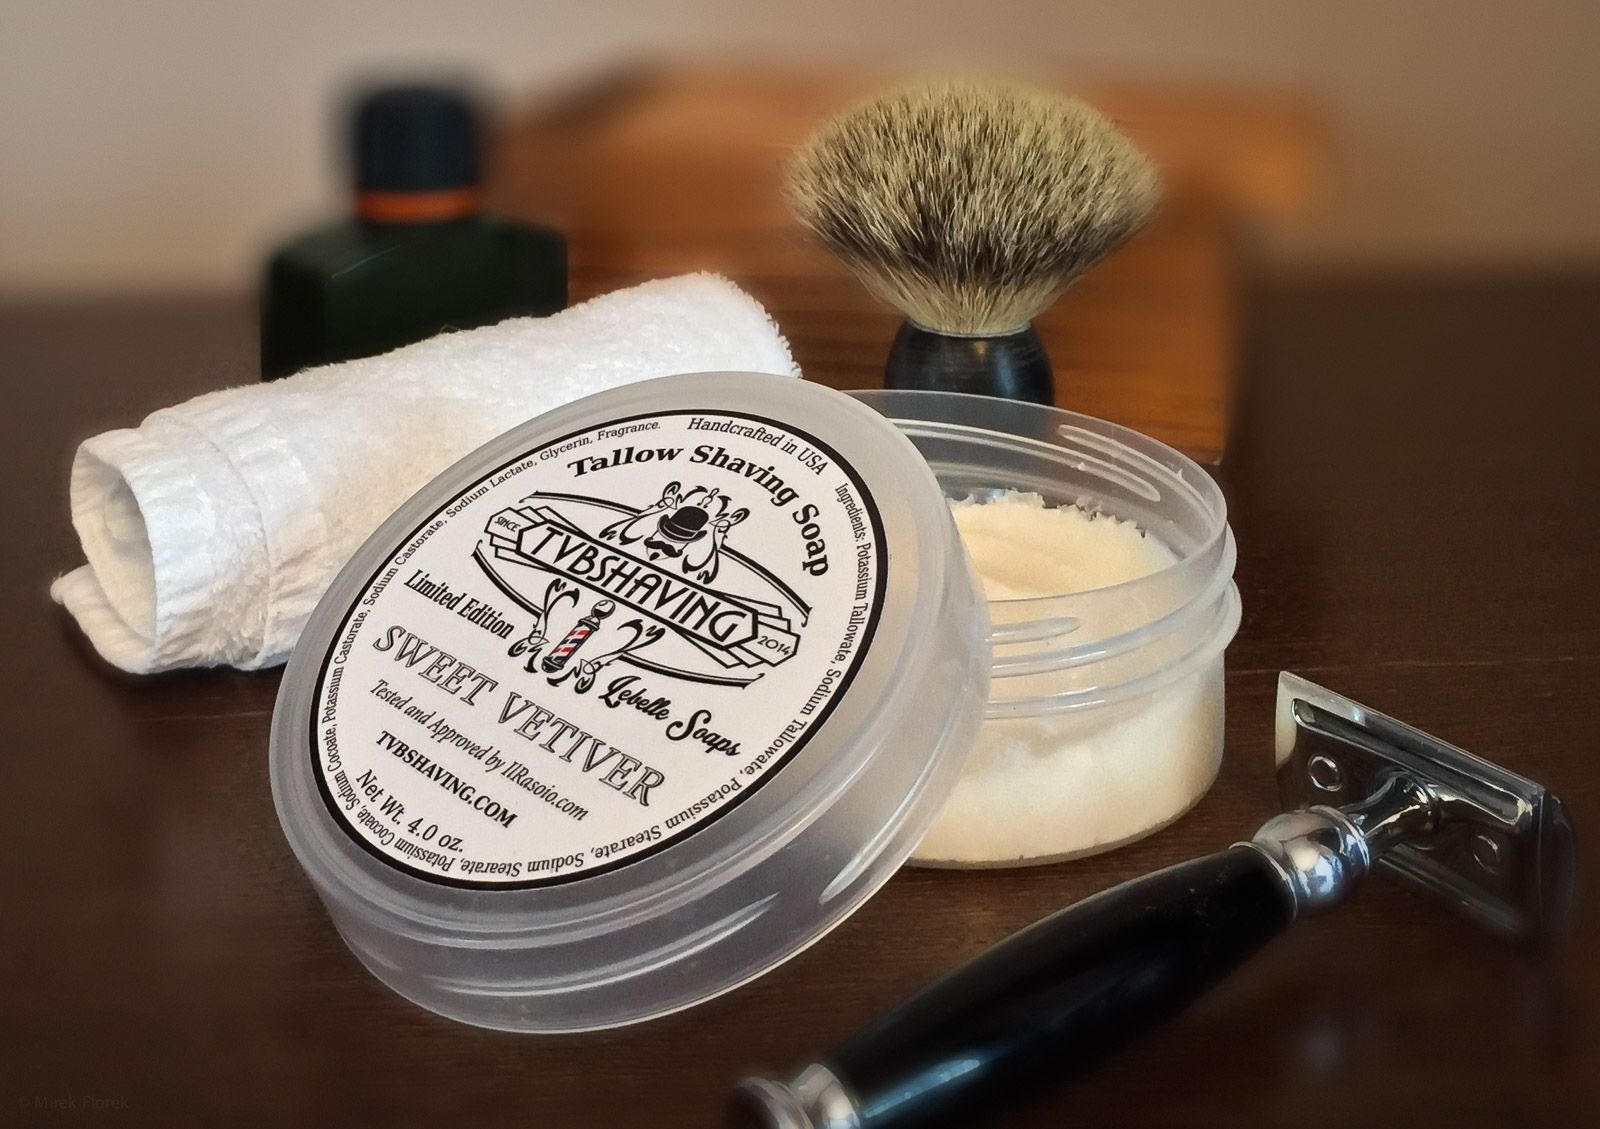 tvb-shaving-sweet-vetiver-scenka